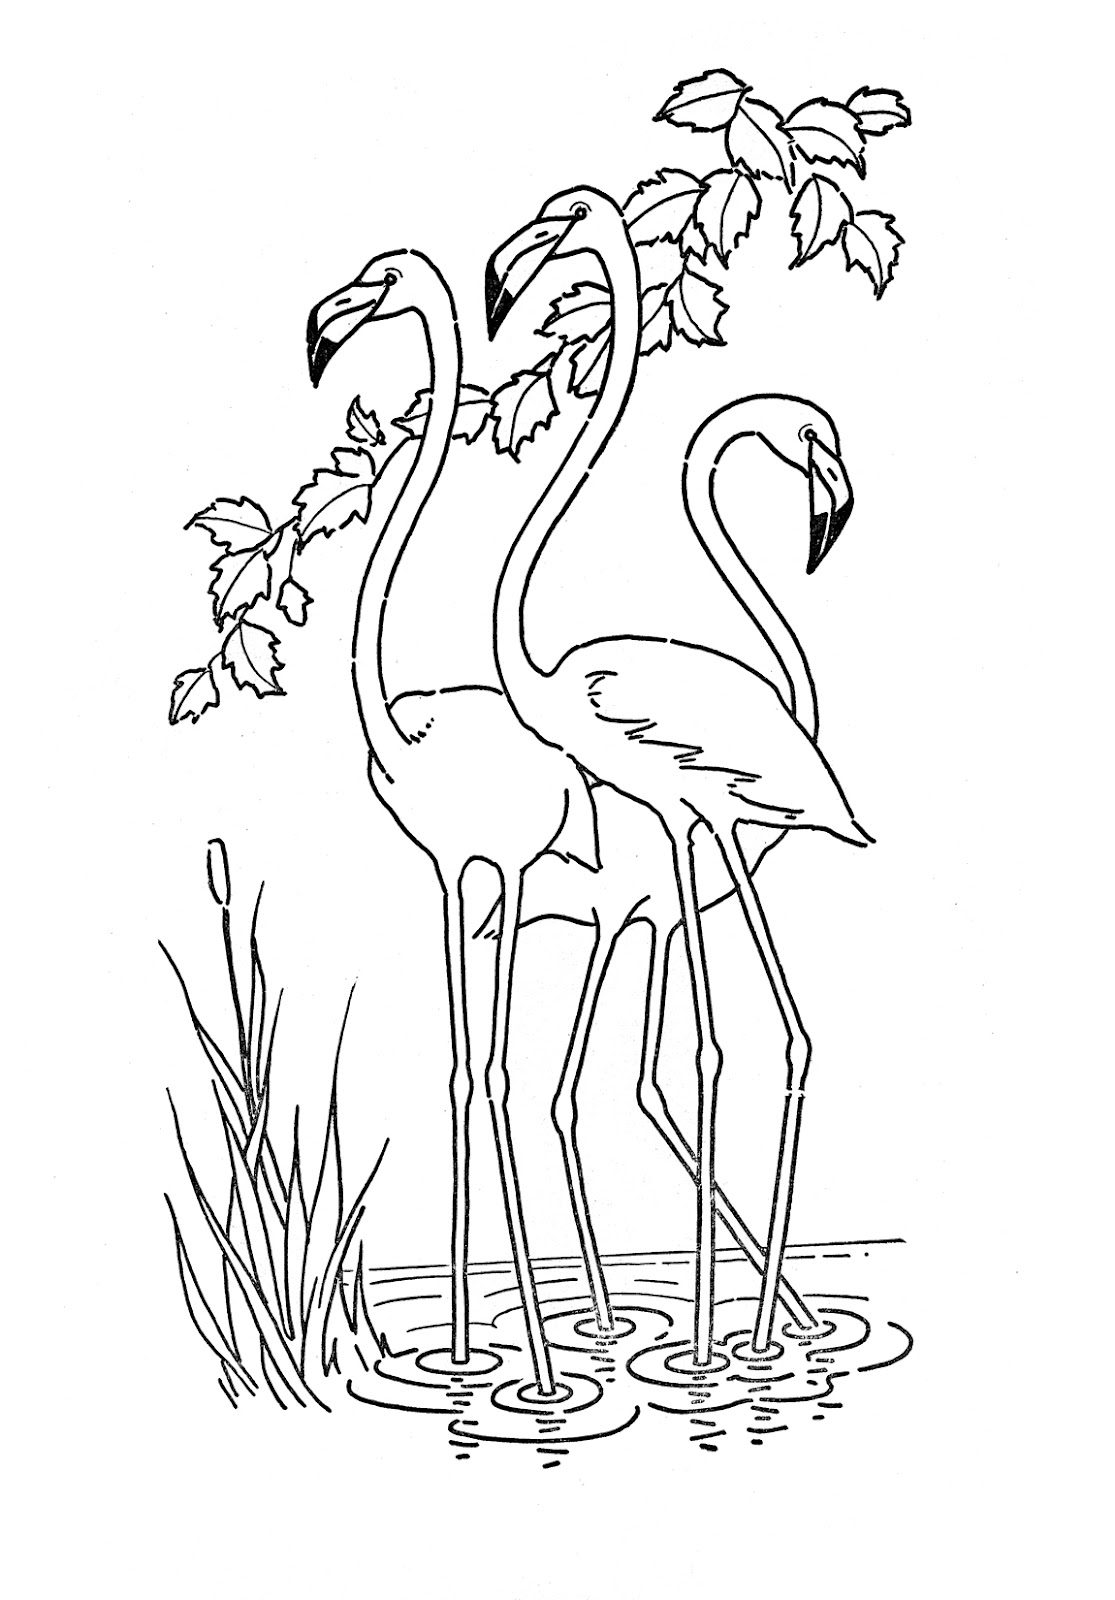 coloring clipart for kids kids printable flamingo coloring page the graphics fairy kids coloring clipart for